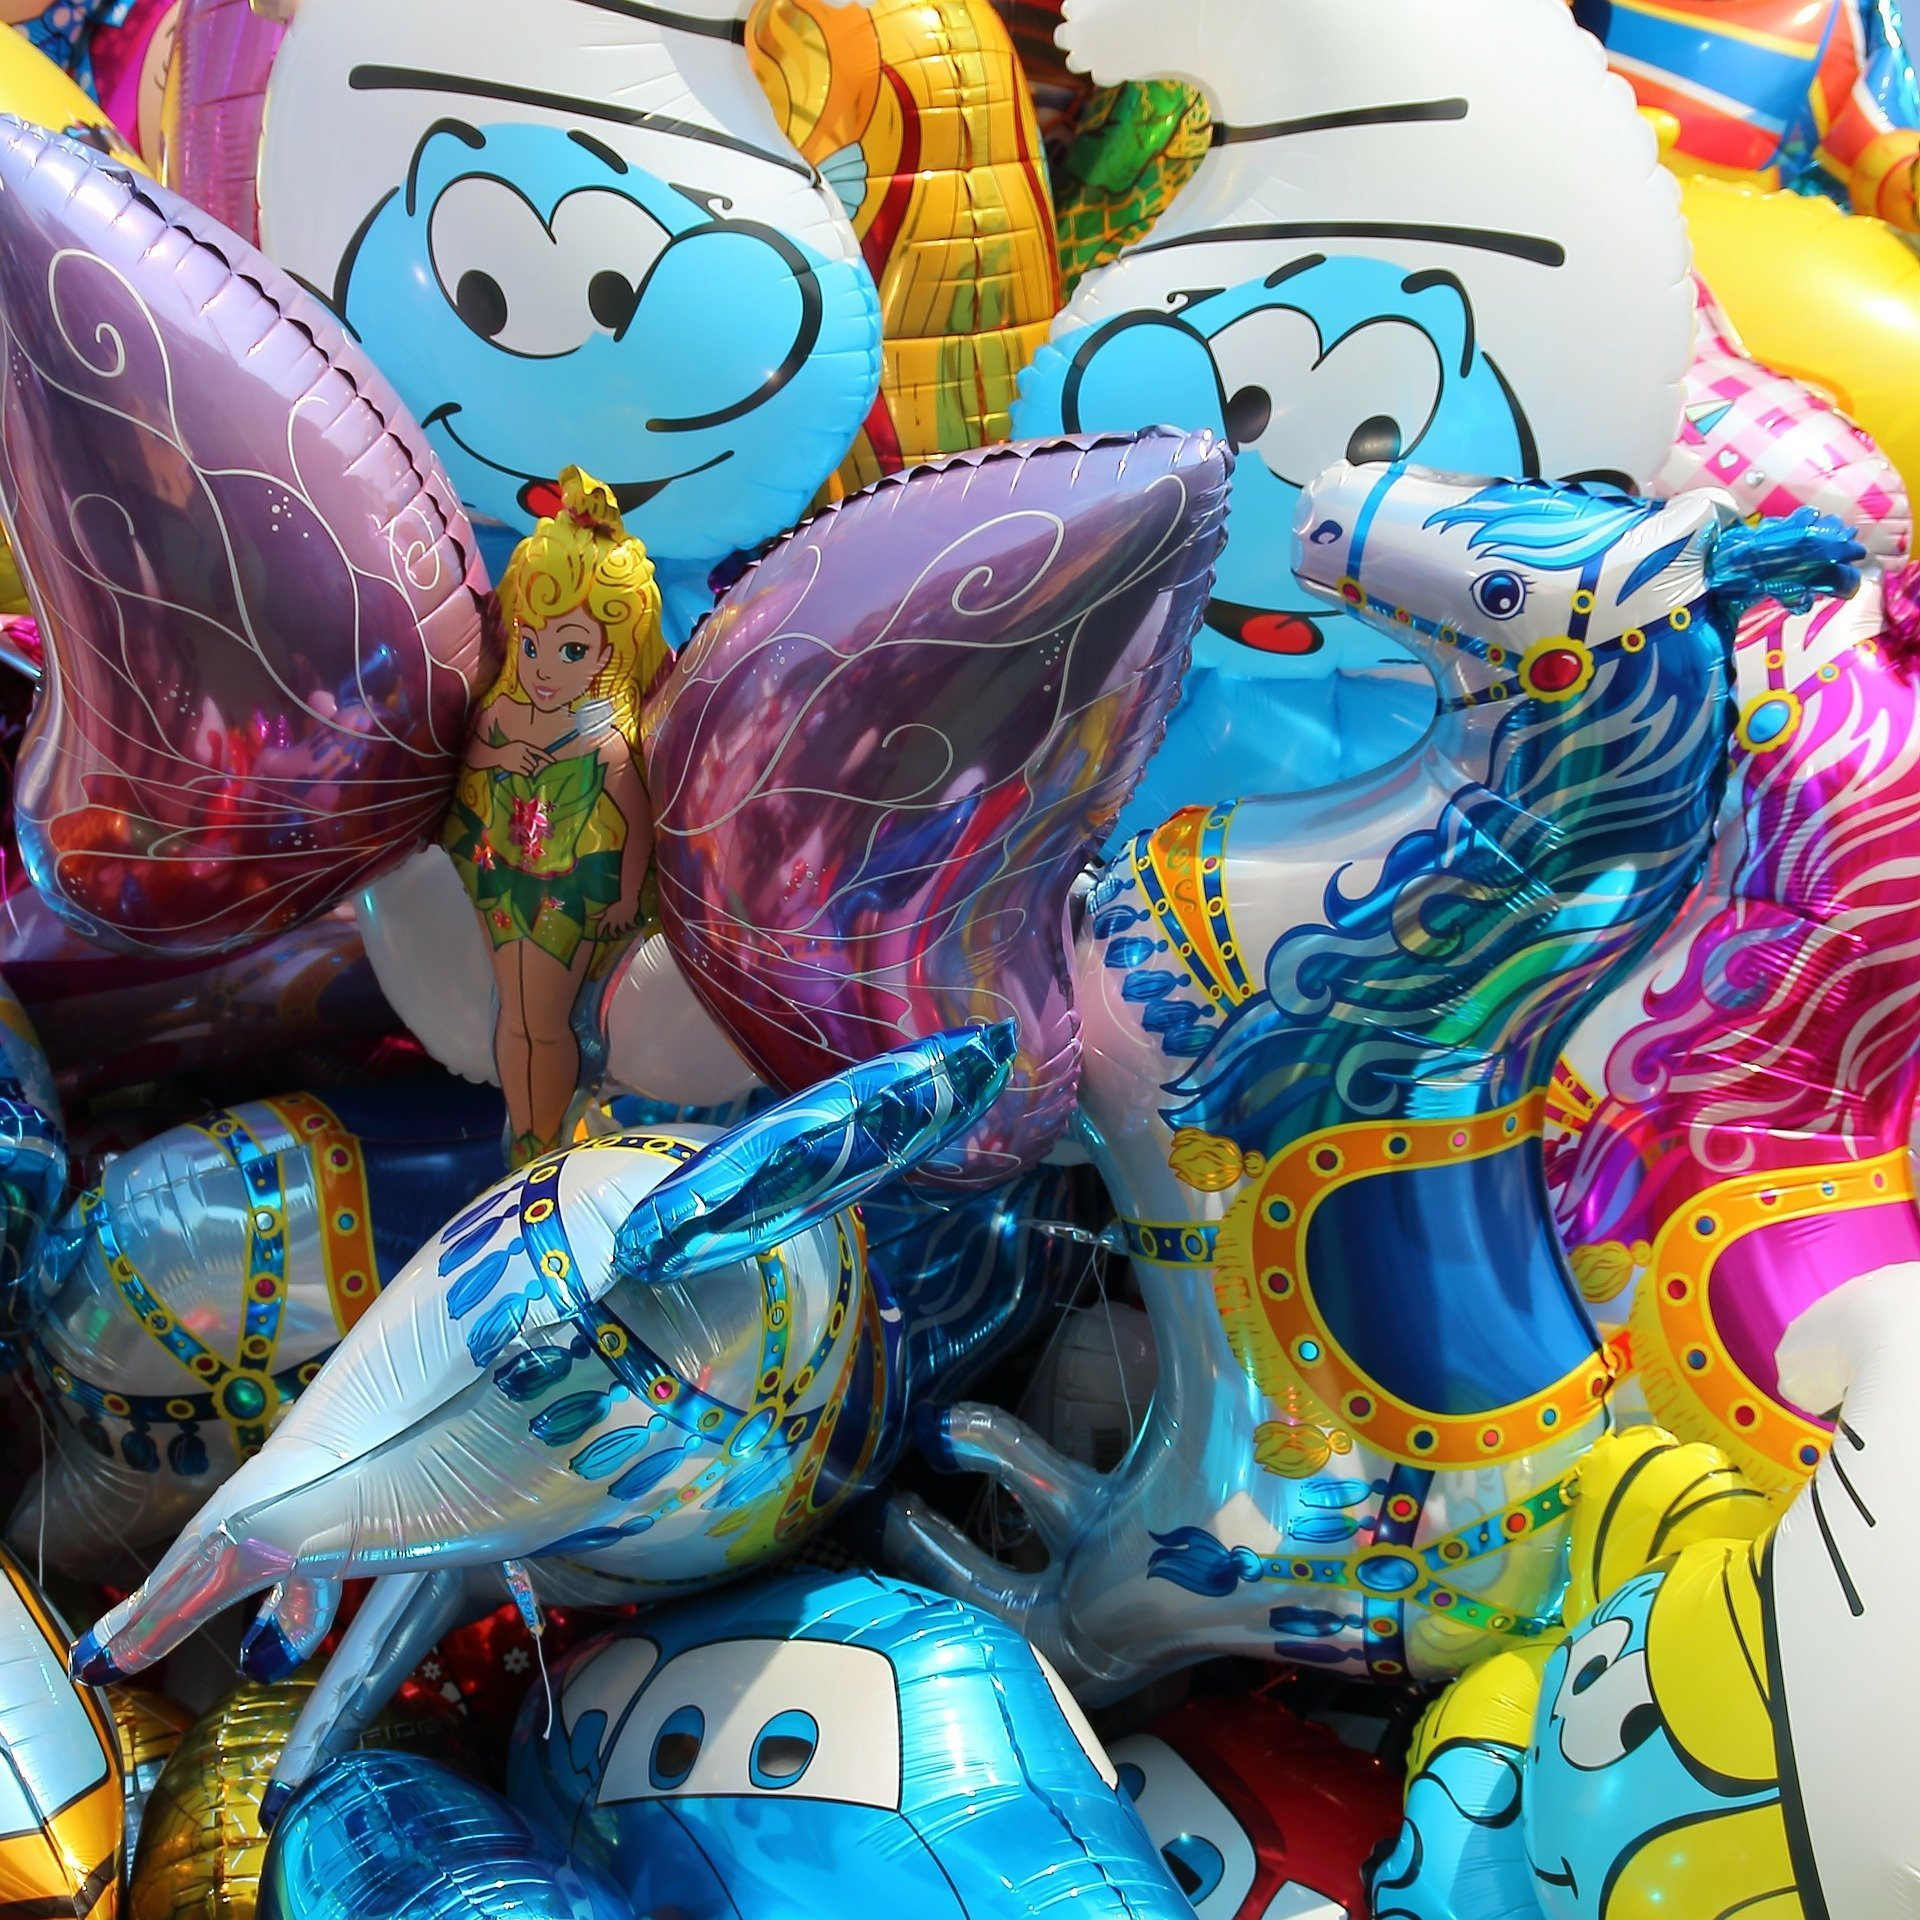 Balloons for bithdays, anniversary, special events, corporate parties